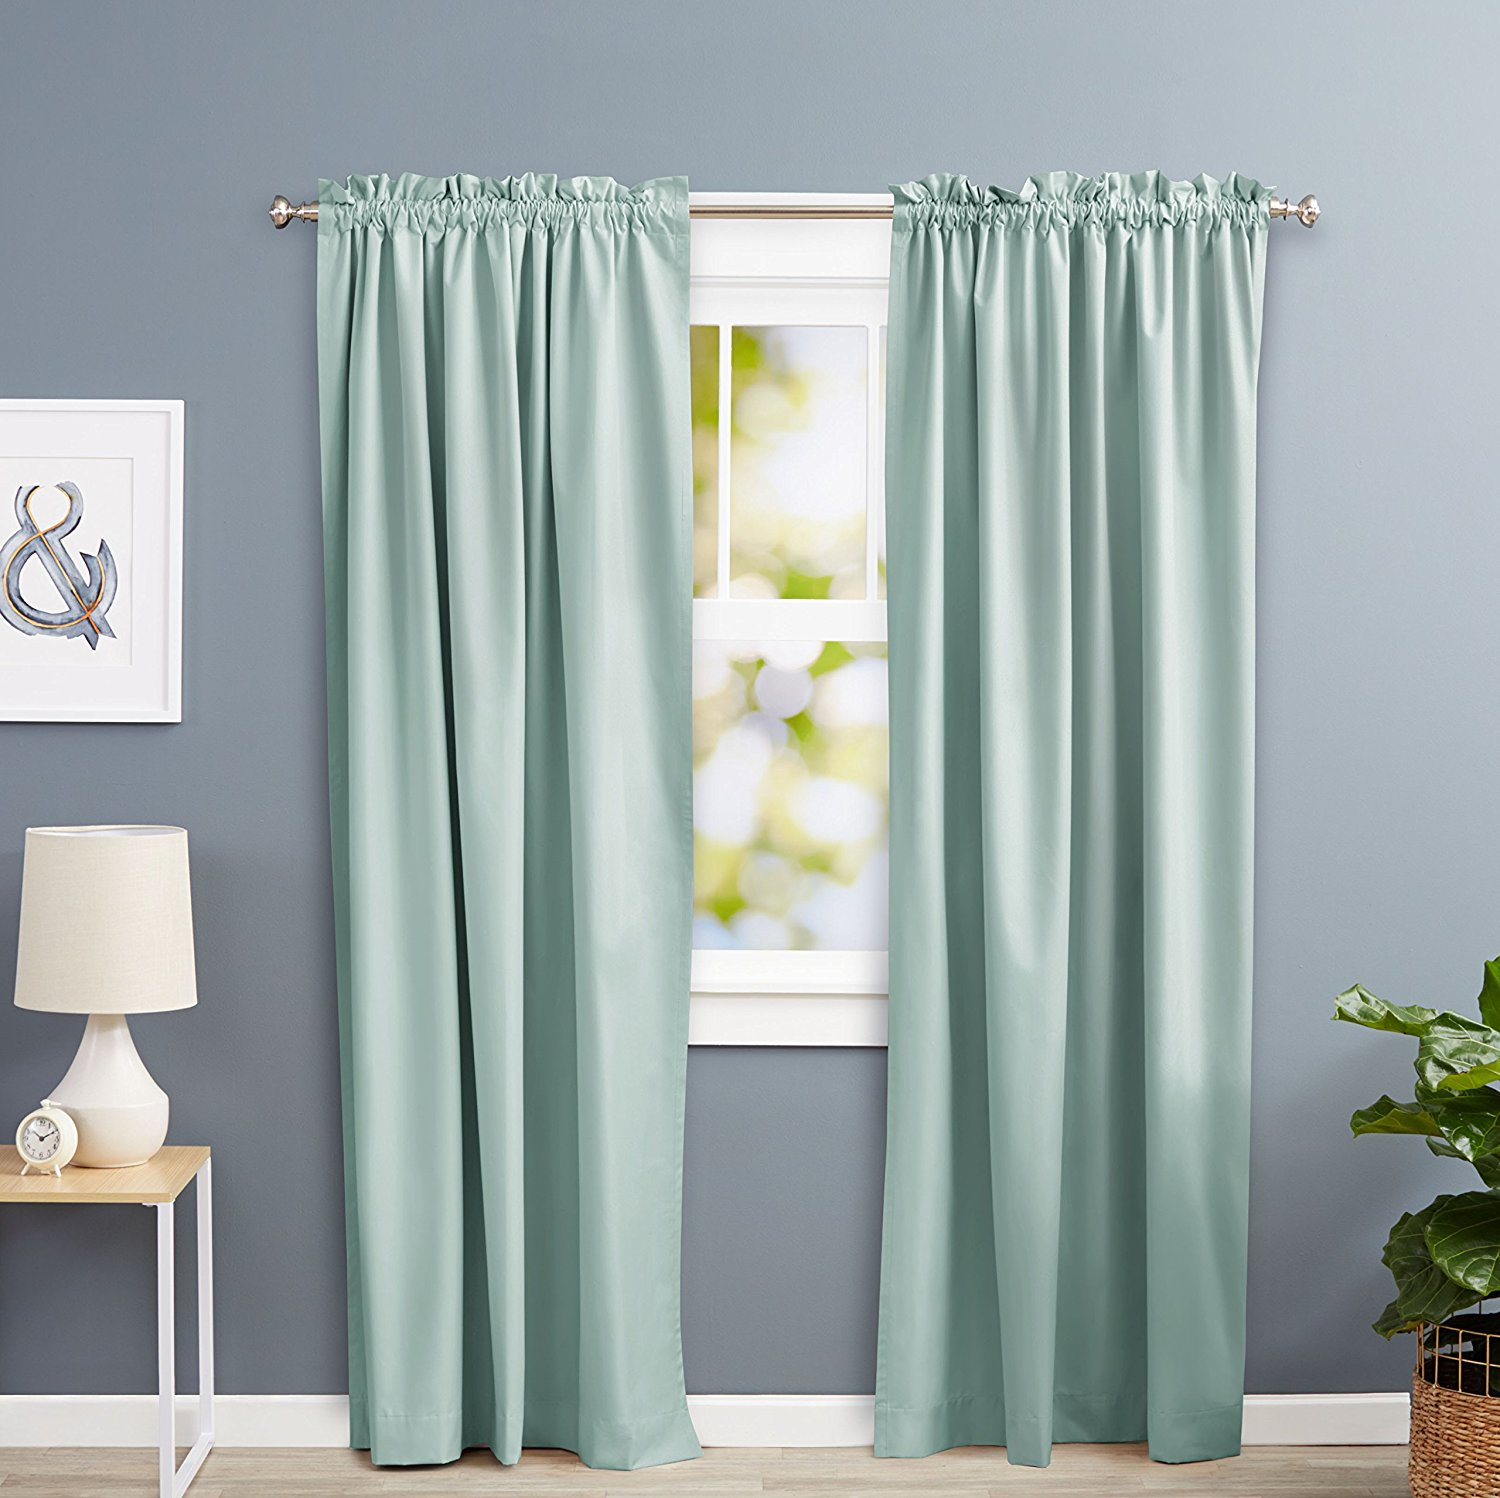 Teal Blackout Curtains The Best Blackout Curtains Top Blackout Curtains